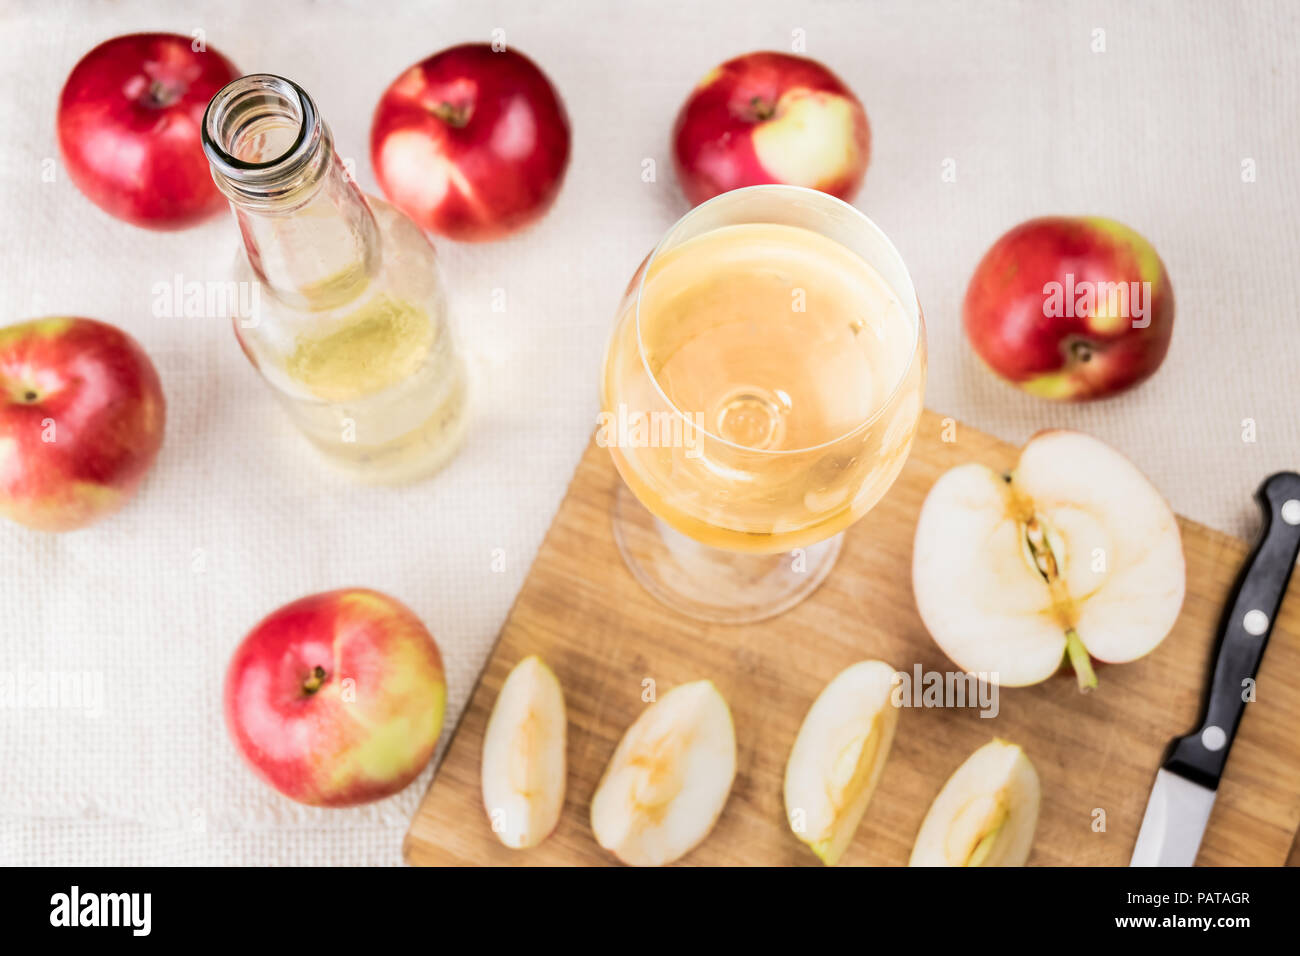 Flat lay with glass of cidre drink on rustic wooden table. Top view of home made cider and locally grown organic apples - Stock Image